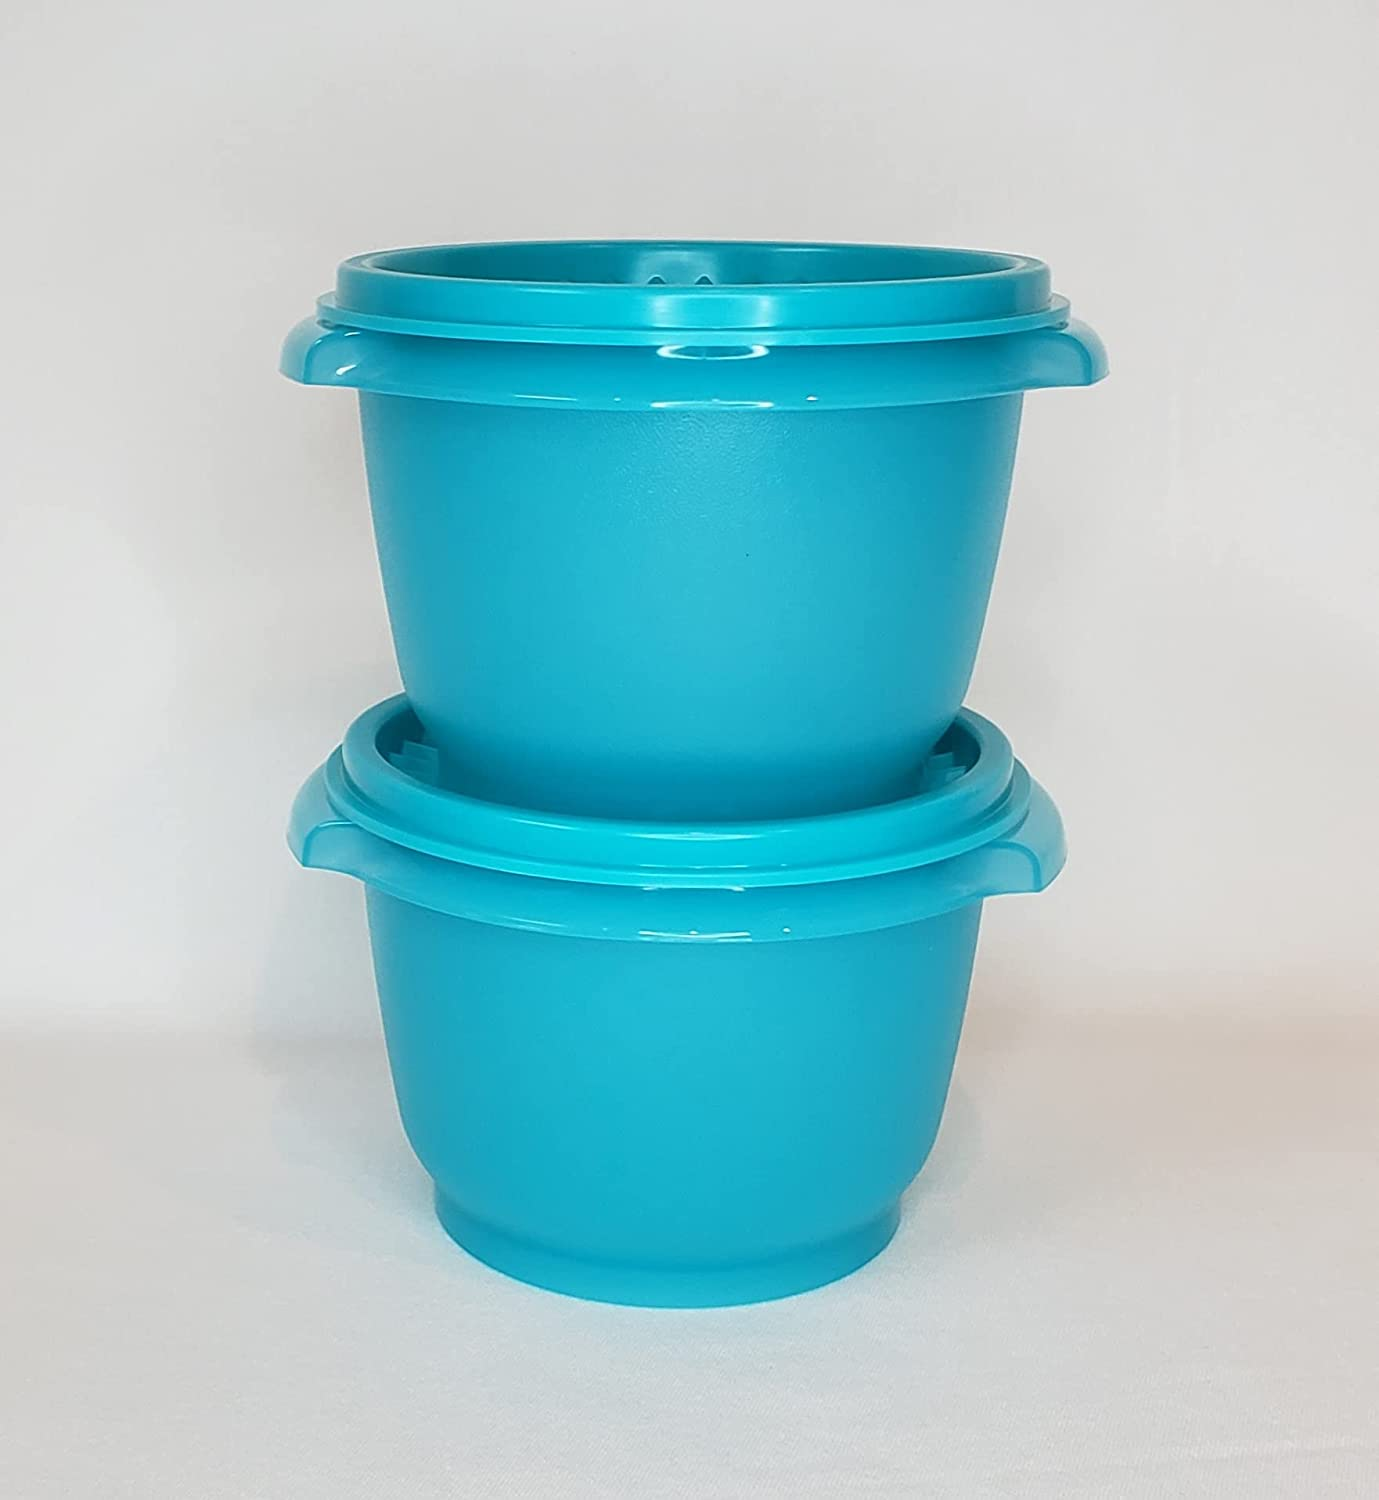 Tupperware New 20 Outstanding Ounce Servalier of 2 Set Bowls Import